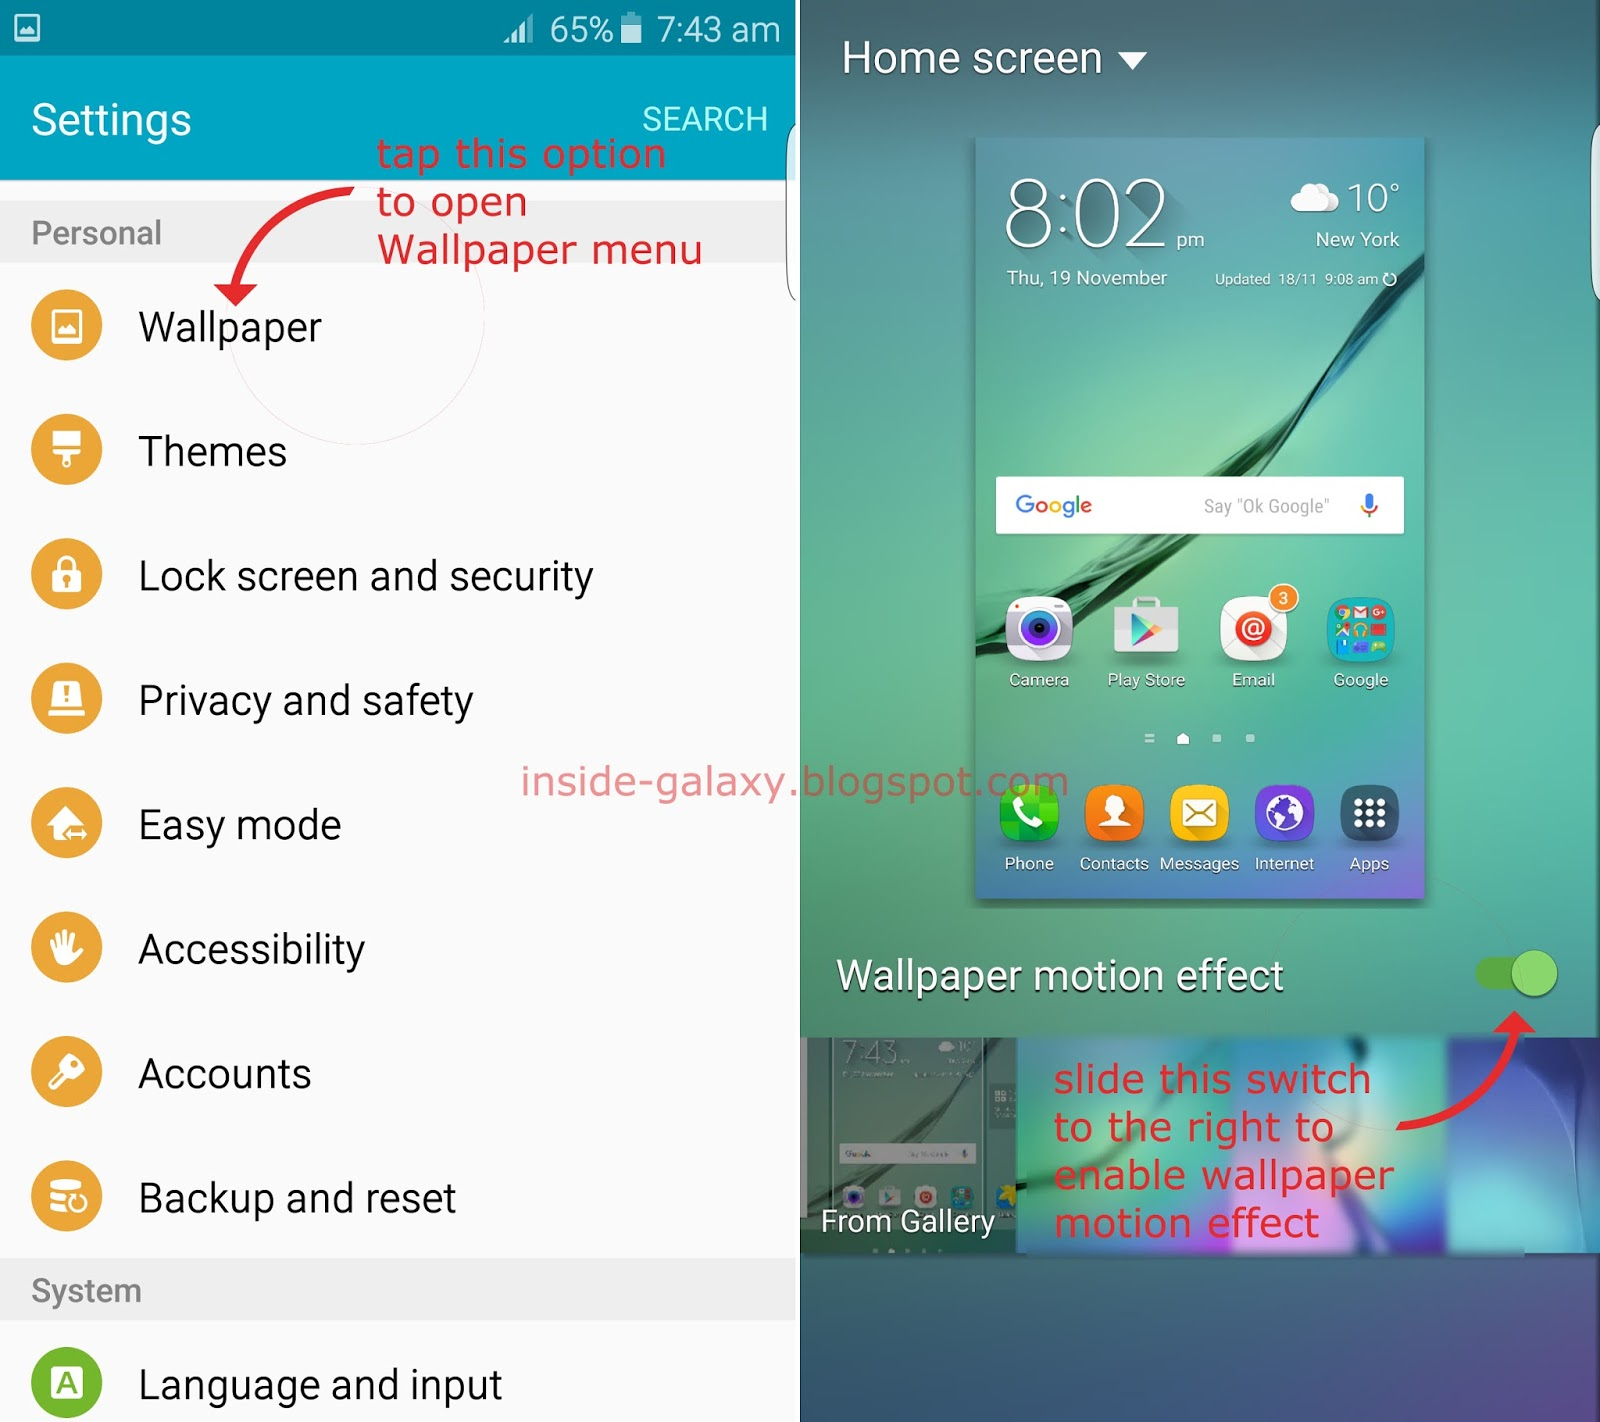 Samsung Galaxy S6 Edge: How To Enable And Use Wallpaper